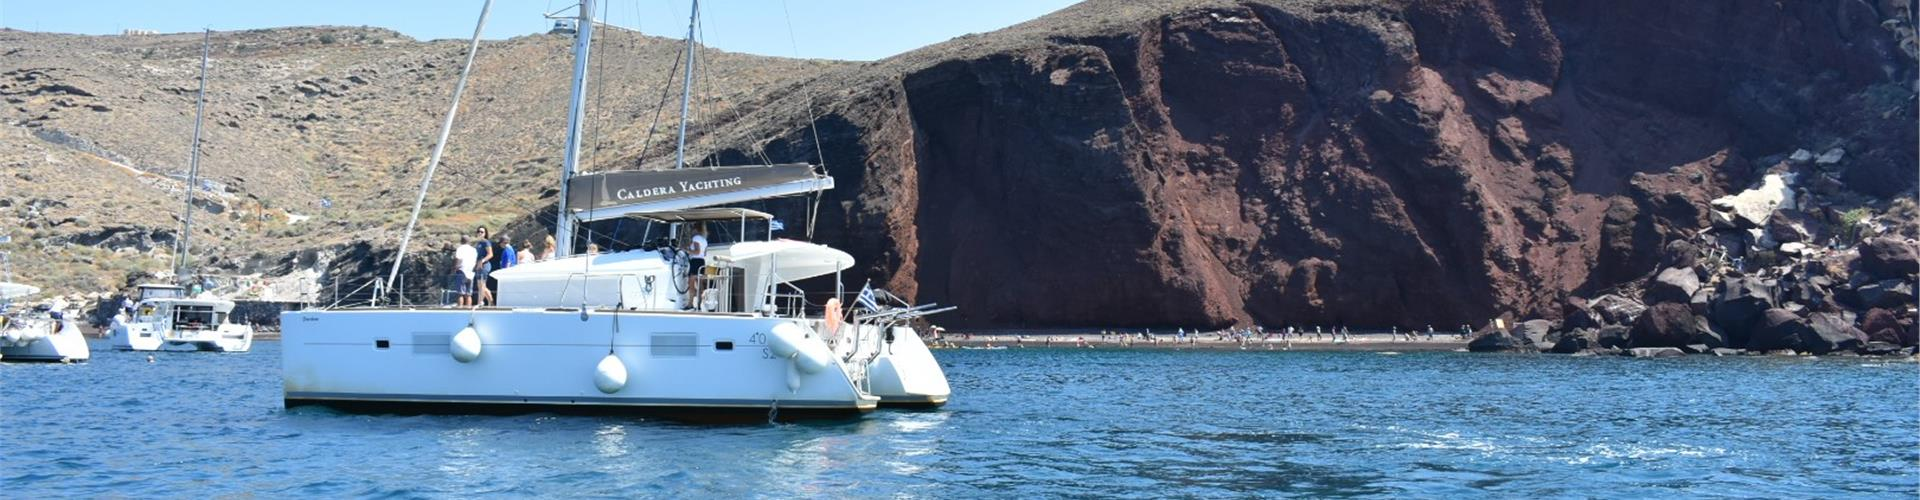 Photo of Private Catamaran Cruise in Santorini with meal and drinks